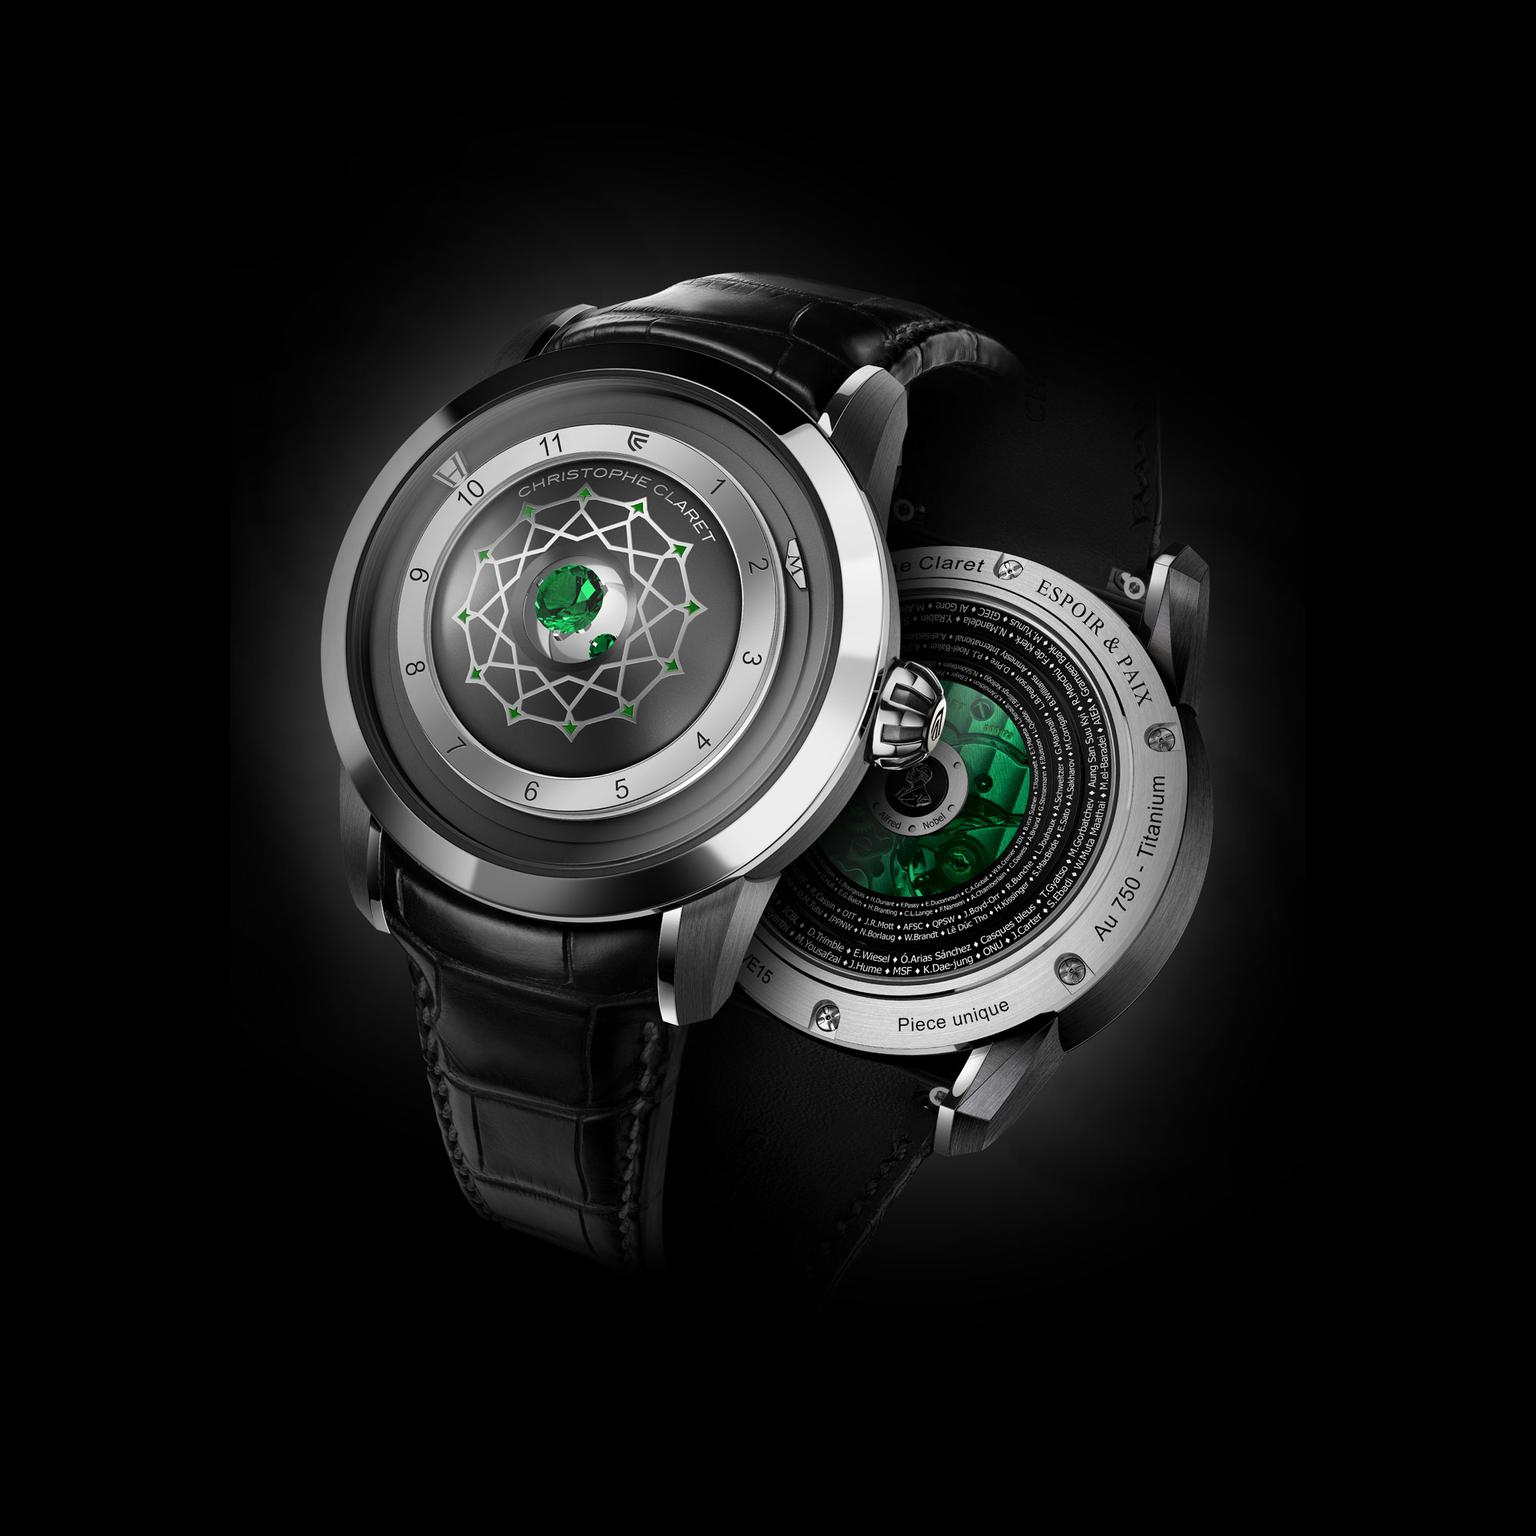 Christophe Claret Recto Verso watch